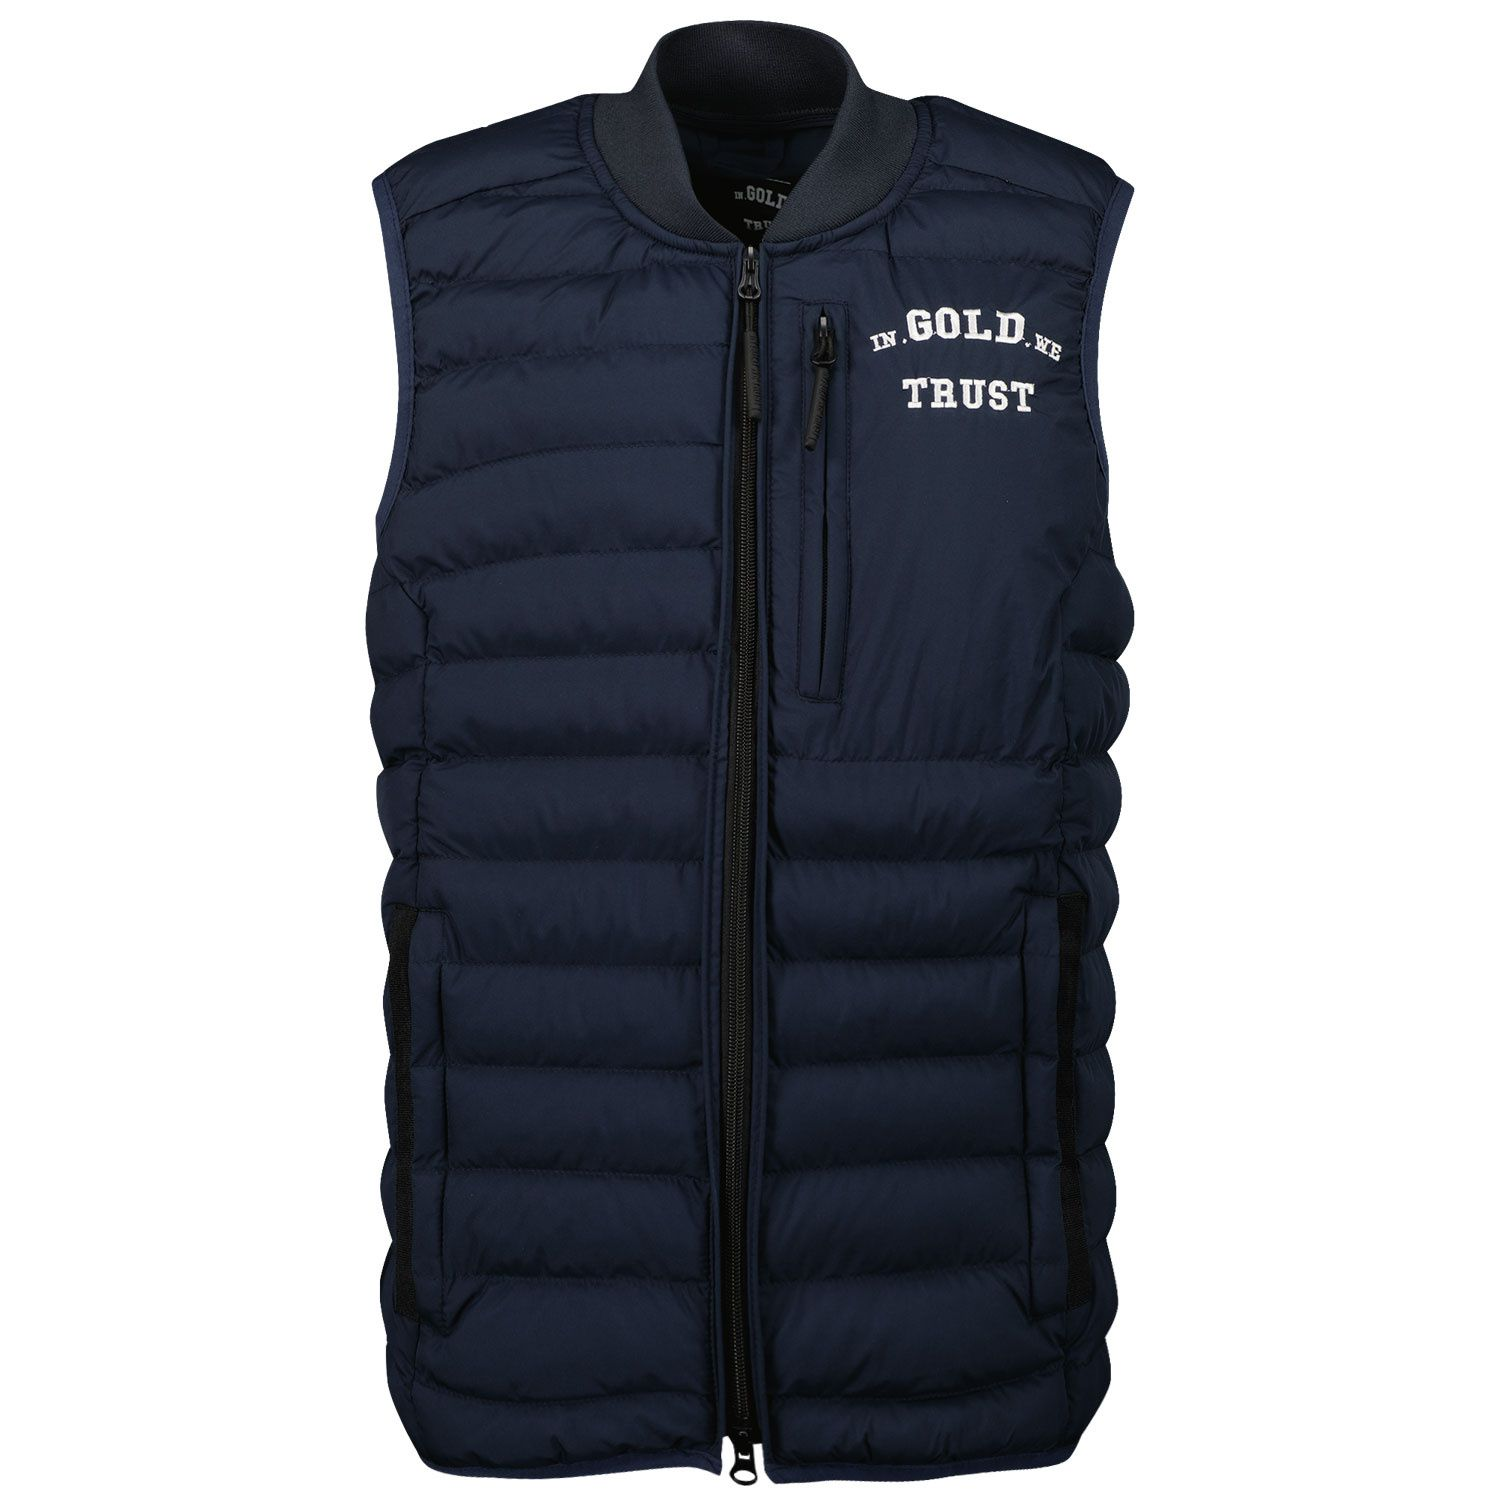 Picture of in Gold We Trust THE GLORY kids bodywarmer navy